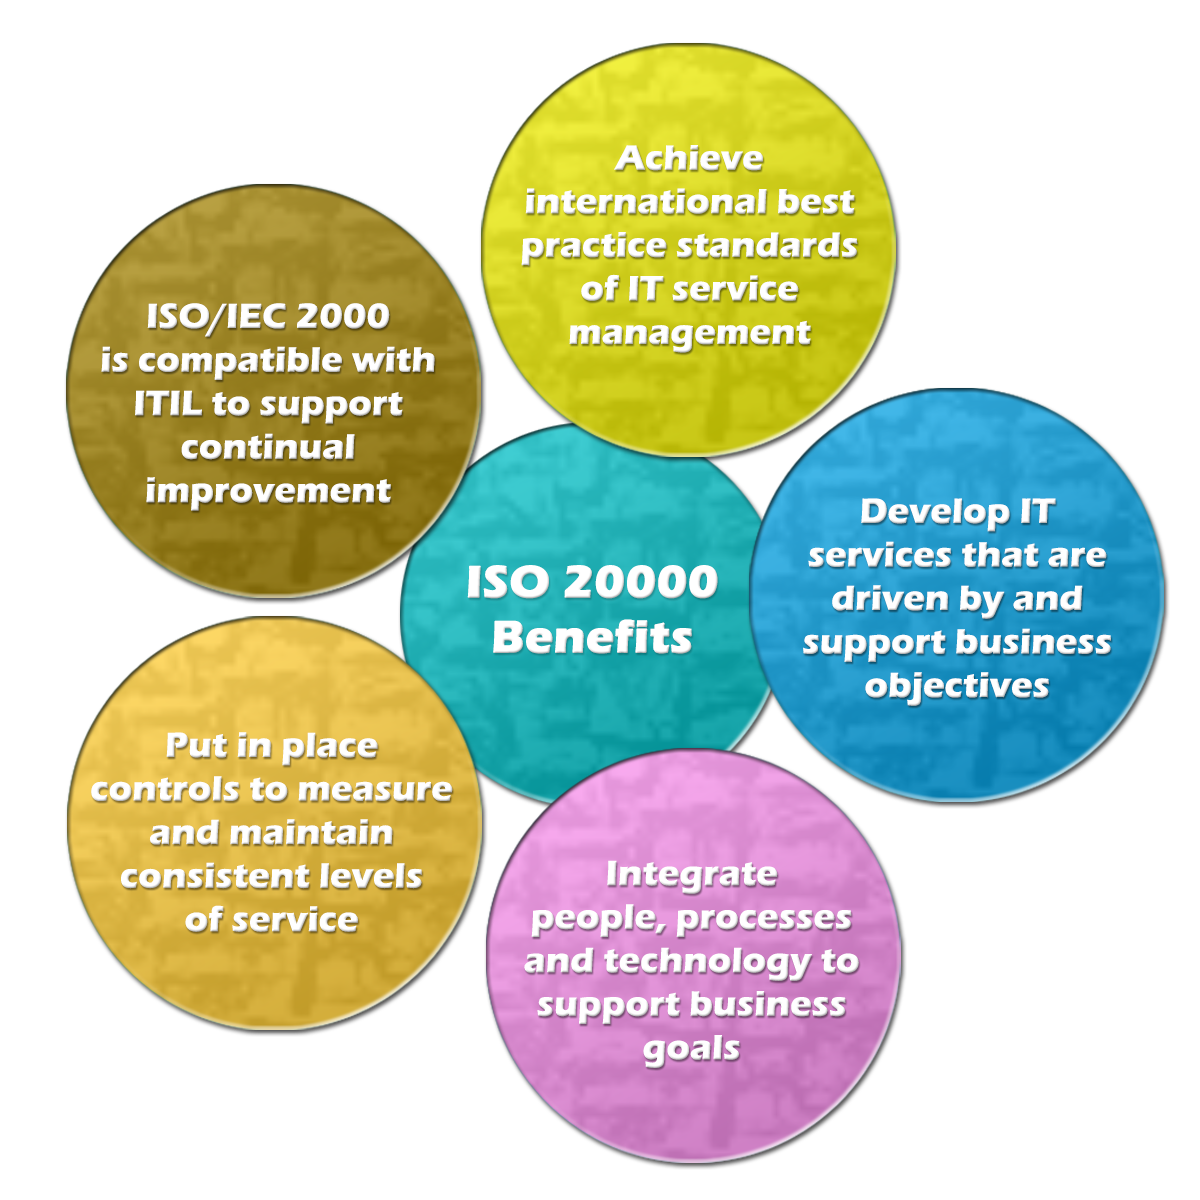 iso/iec 20000-1 it service management standard